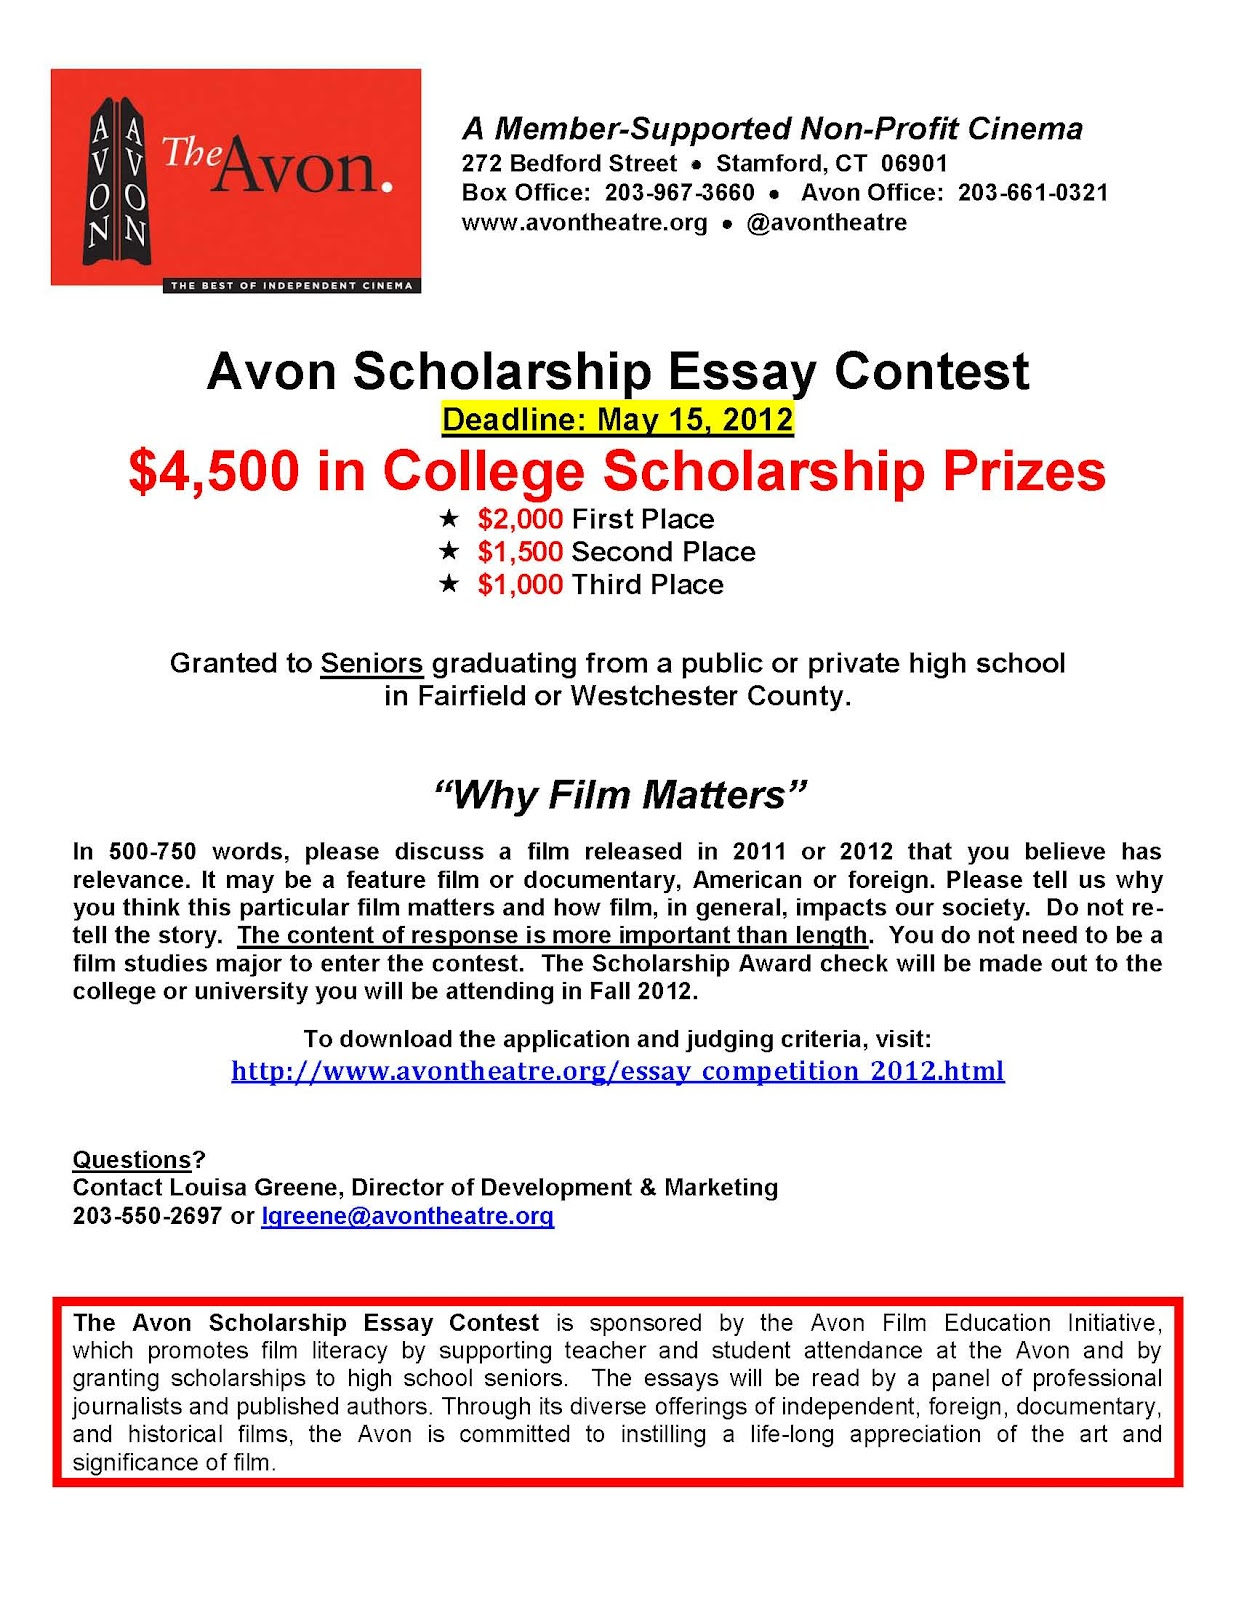 Essay Thesis Avon Film Essay Contest  Scholarship For Graduating High School Seniors Sample Essay Thesis also Paper Essay Writing Stamford Downtown Events Avon Film Essay Contest  Scholarship For  Good Thesis Statements For Essays